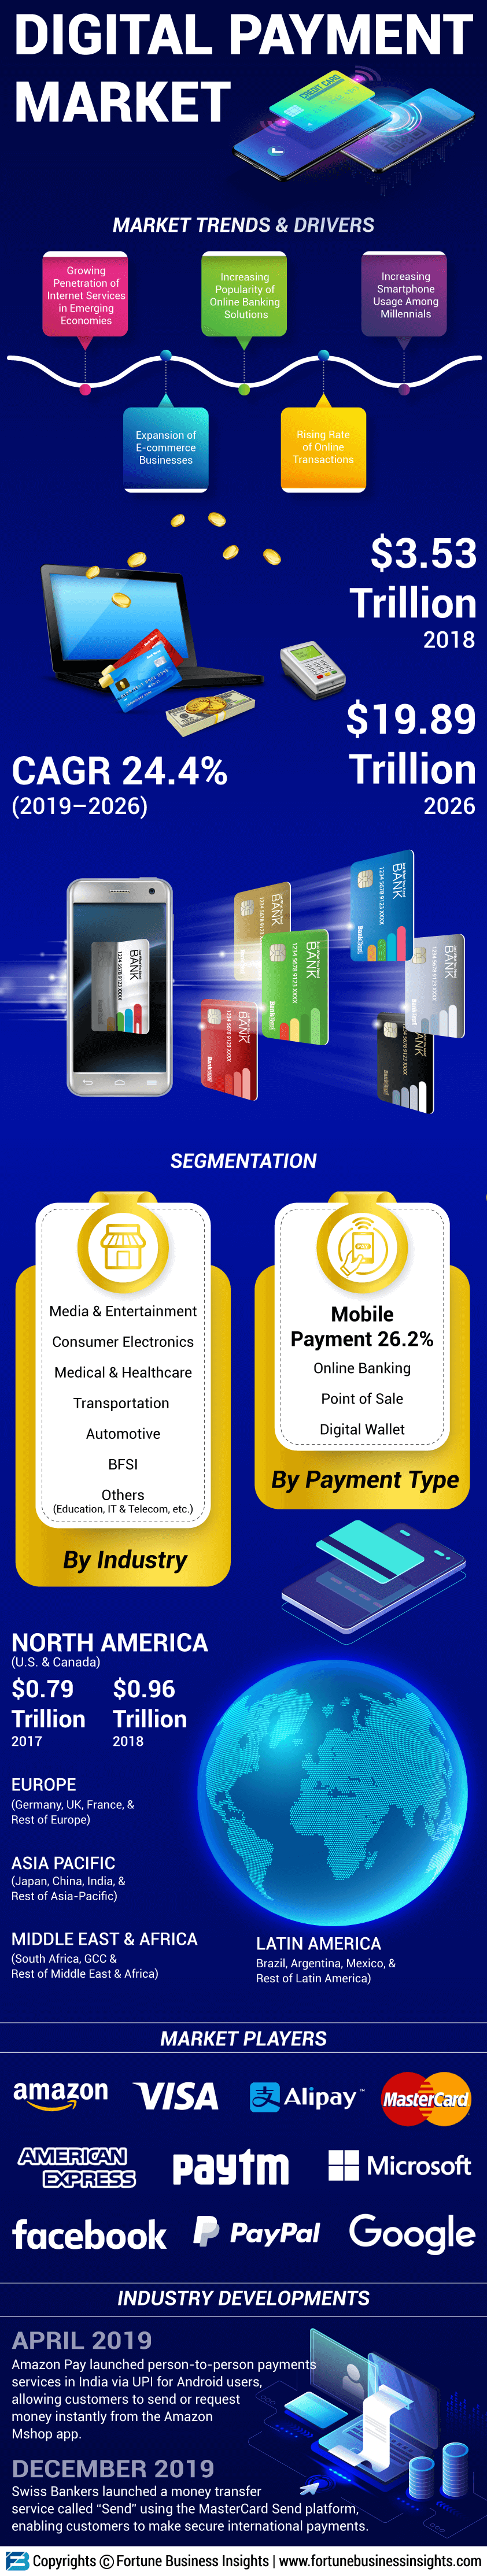 Digital Payment Market